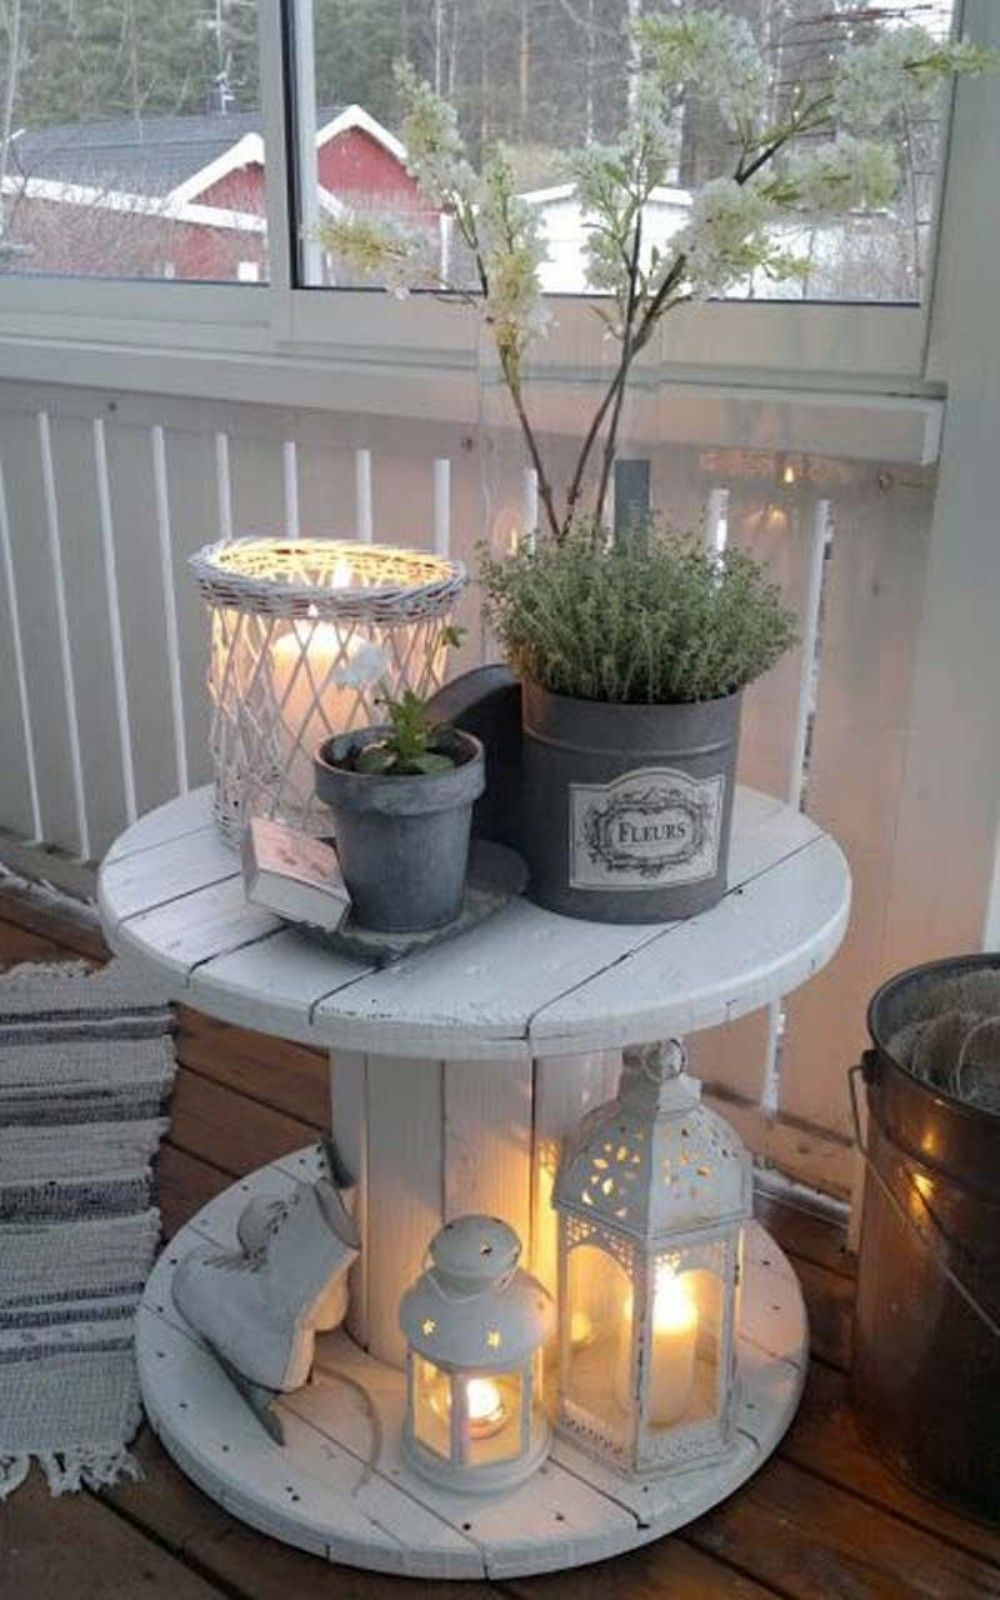 Gorgeous Inspiring DIY Recycled Spool Cable Table Ideas